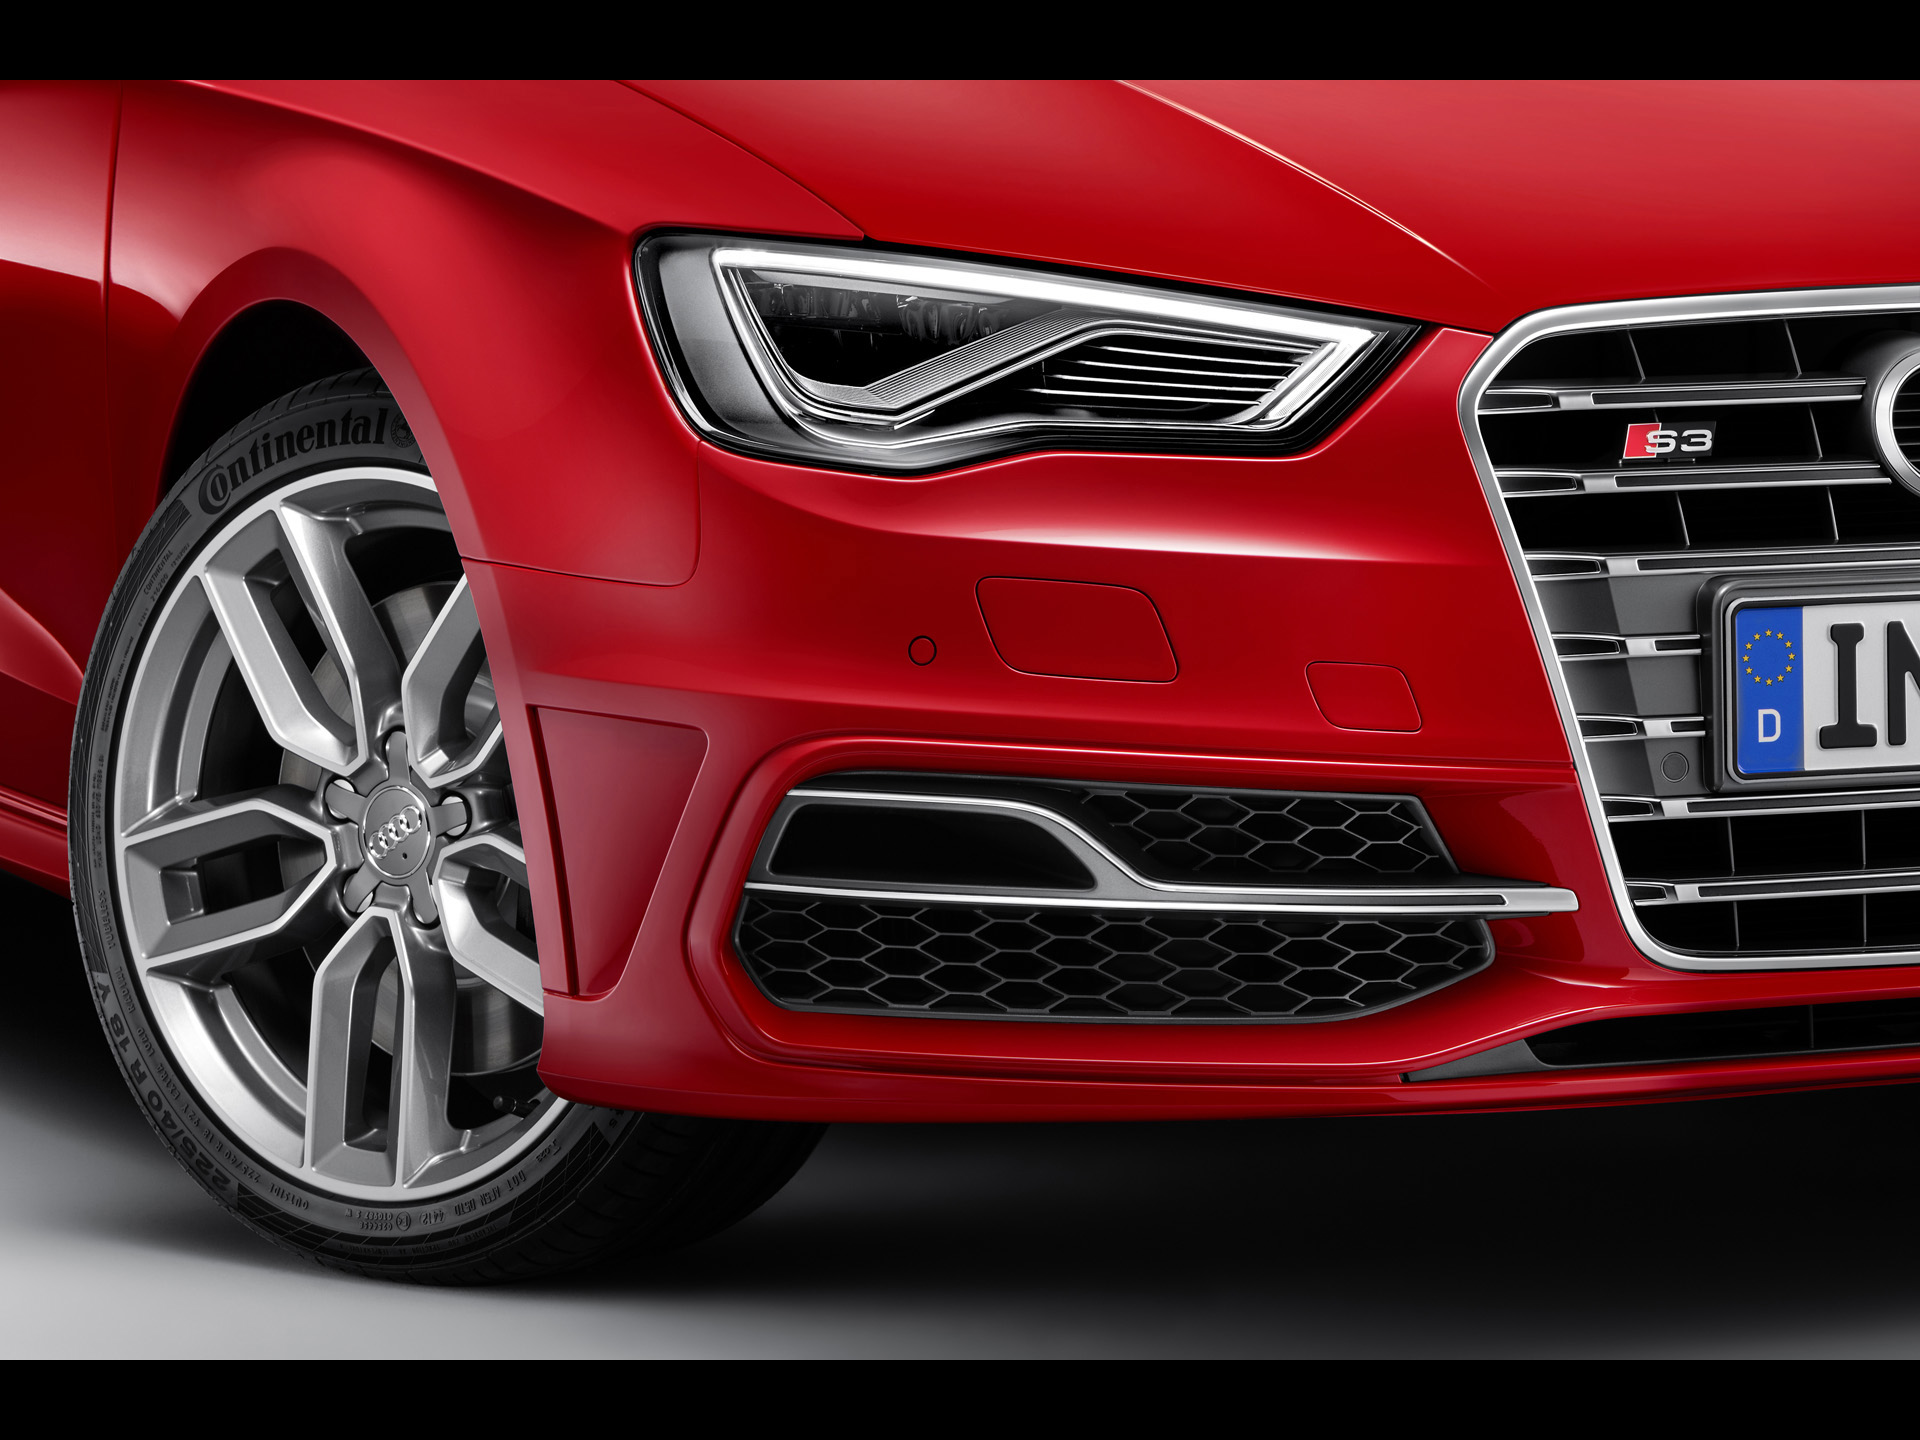 2013 audi s3 sportback headlights wallpapers 2013 audi s3 sportback headlights stock photos. Black Bedroom Furniture Sets. Home Design Ideas